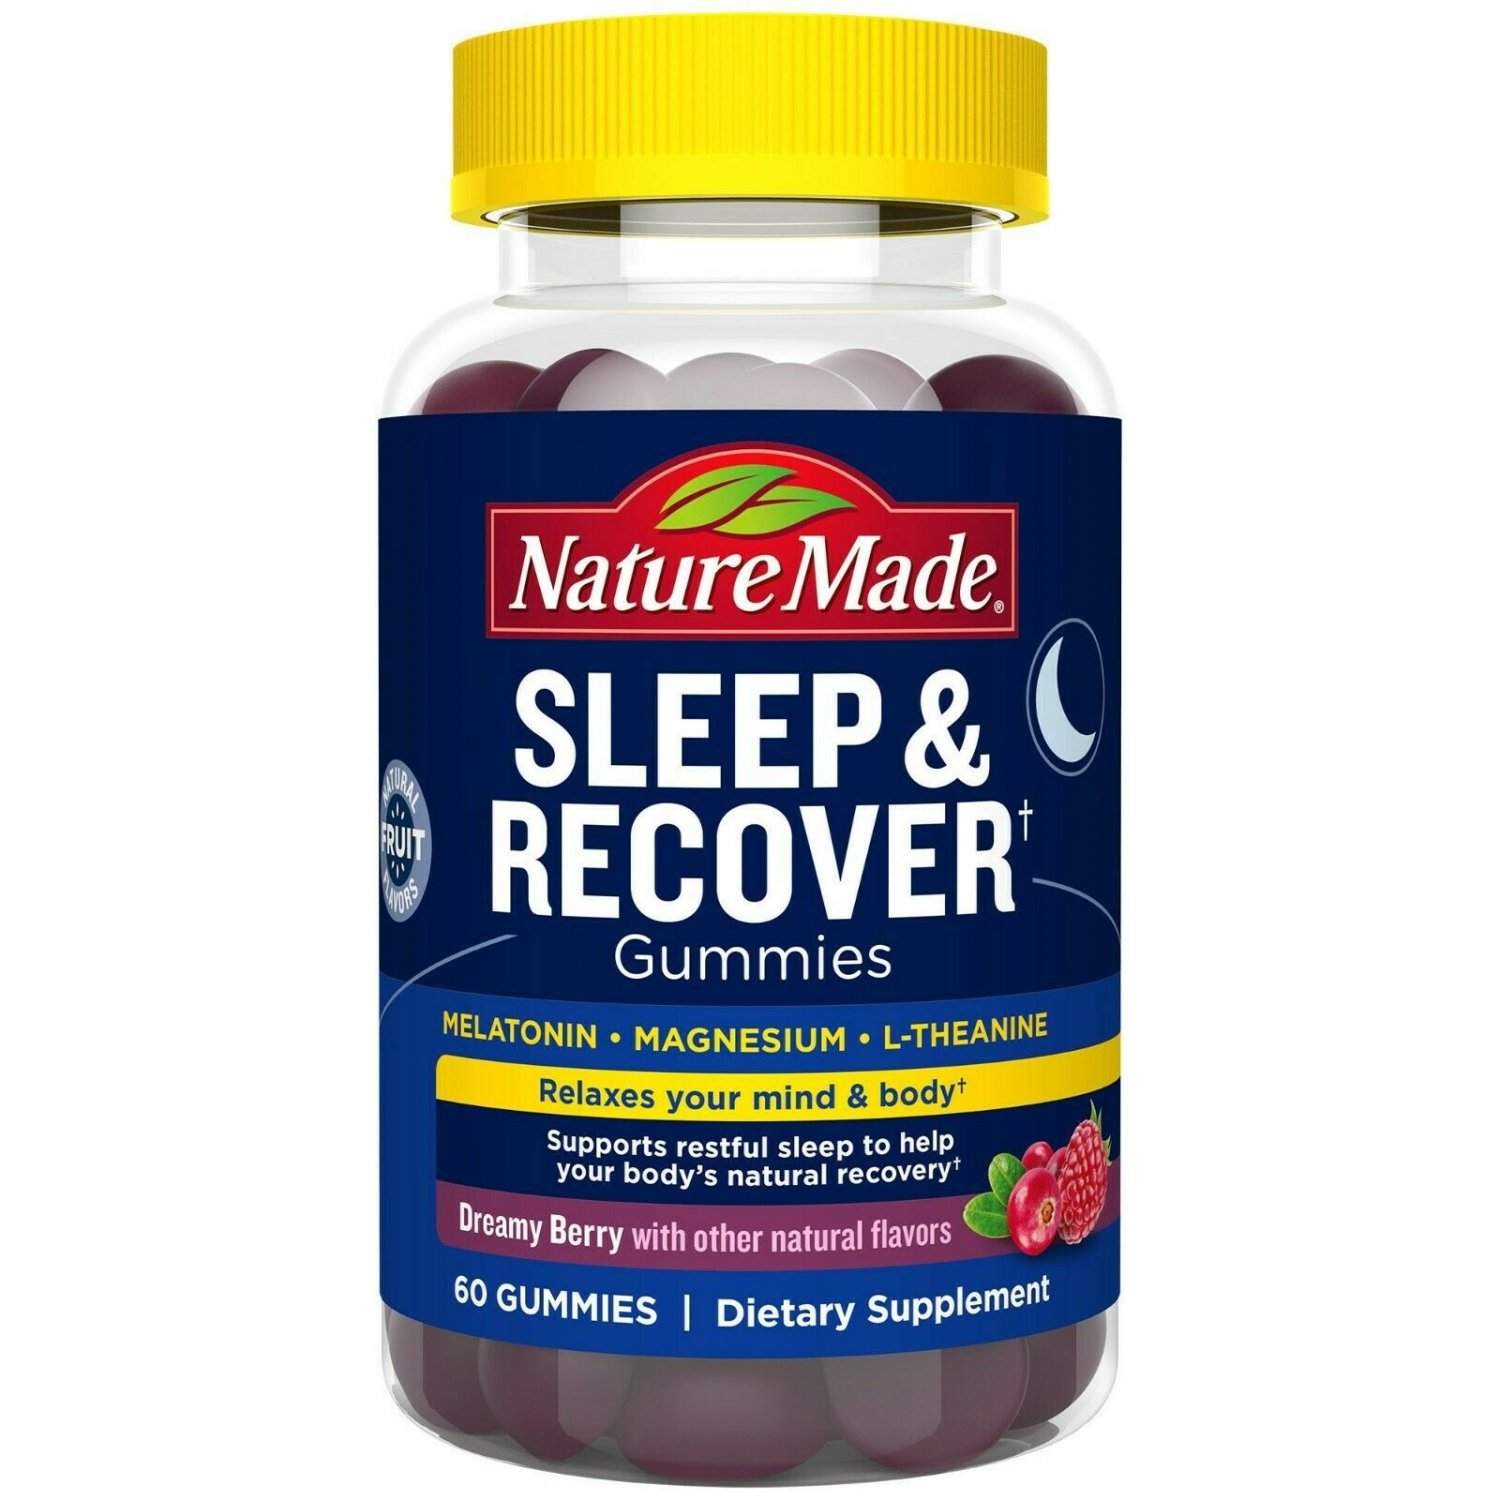 Nature Made Sleep & Recover 60 Gummies